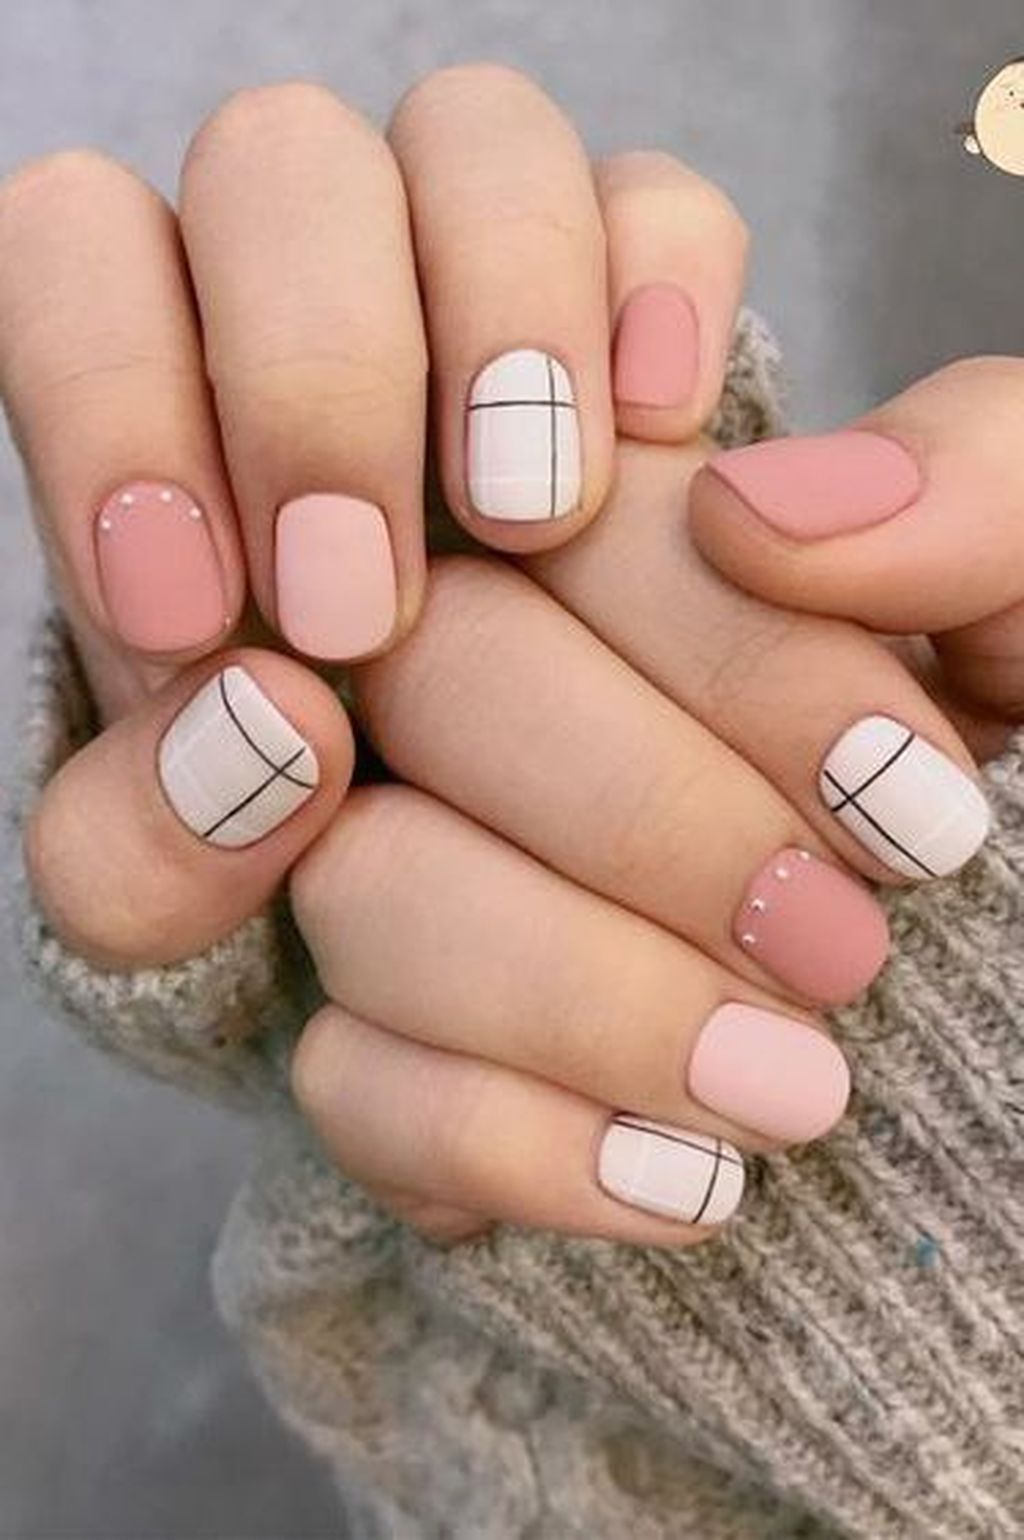 40+ Amazing Spring Nail Art Designs Ideas To Try In 2019 #nailartdesigns